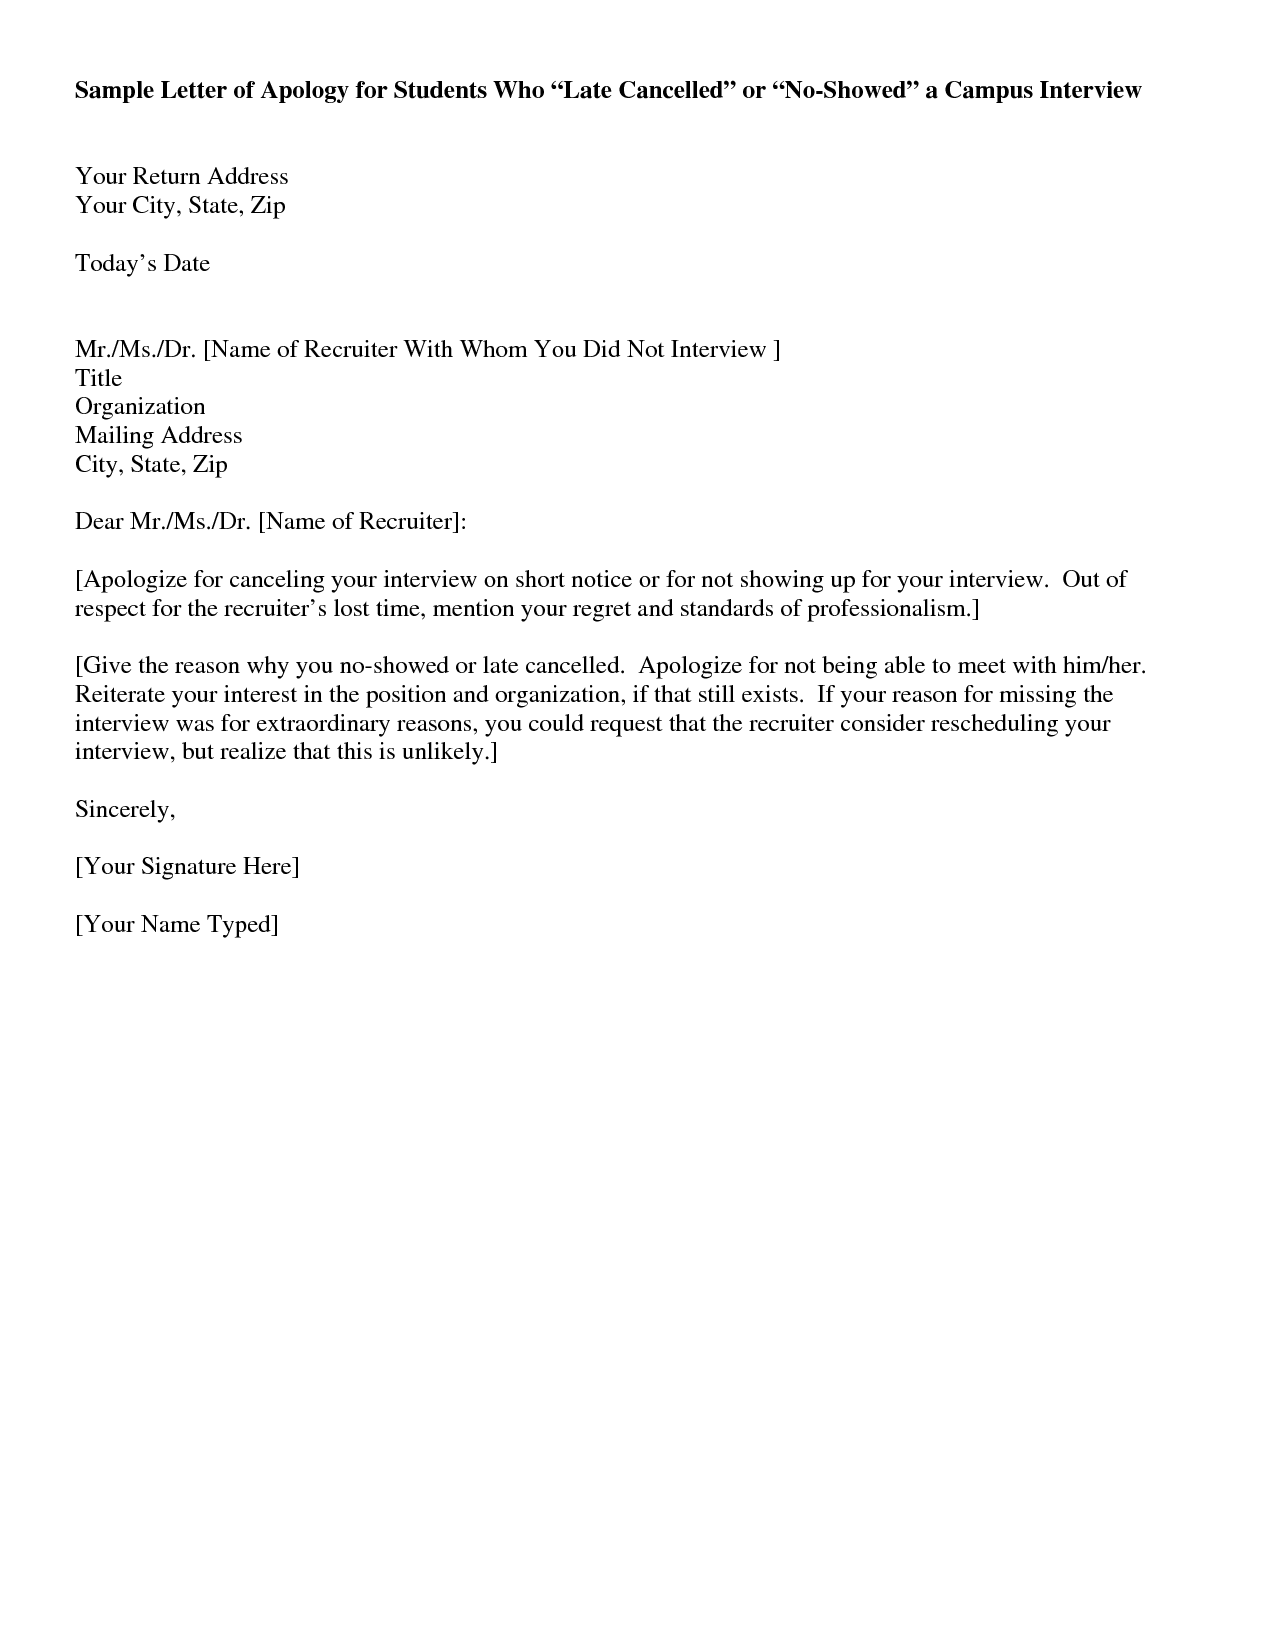 You Ed For Letter Of Apology Sample Downloadtemplatesusletter Of